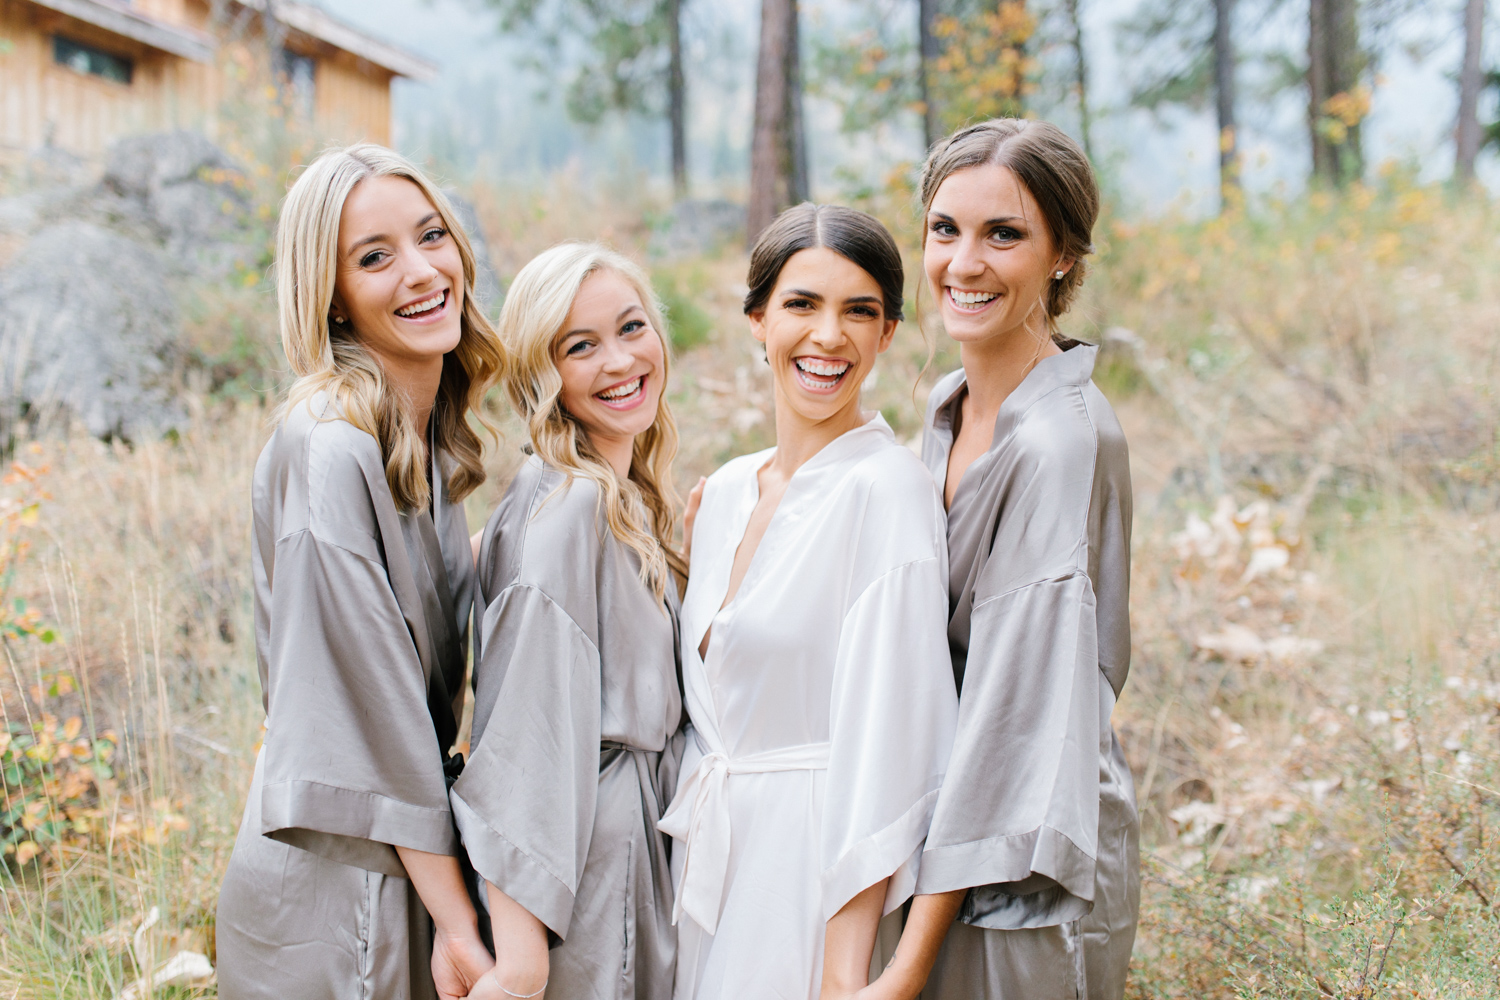 Grey and White Wedding in the Mountains of Leavenworth, Washington | Sleeping Lady | Classic and Timeless Wedding | VSCO | Bride and Bridesmaids Getting Ready | Bride in Victoria Secret Robe.jpg-1744.jpg